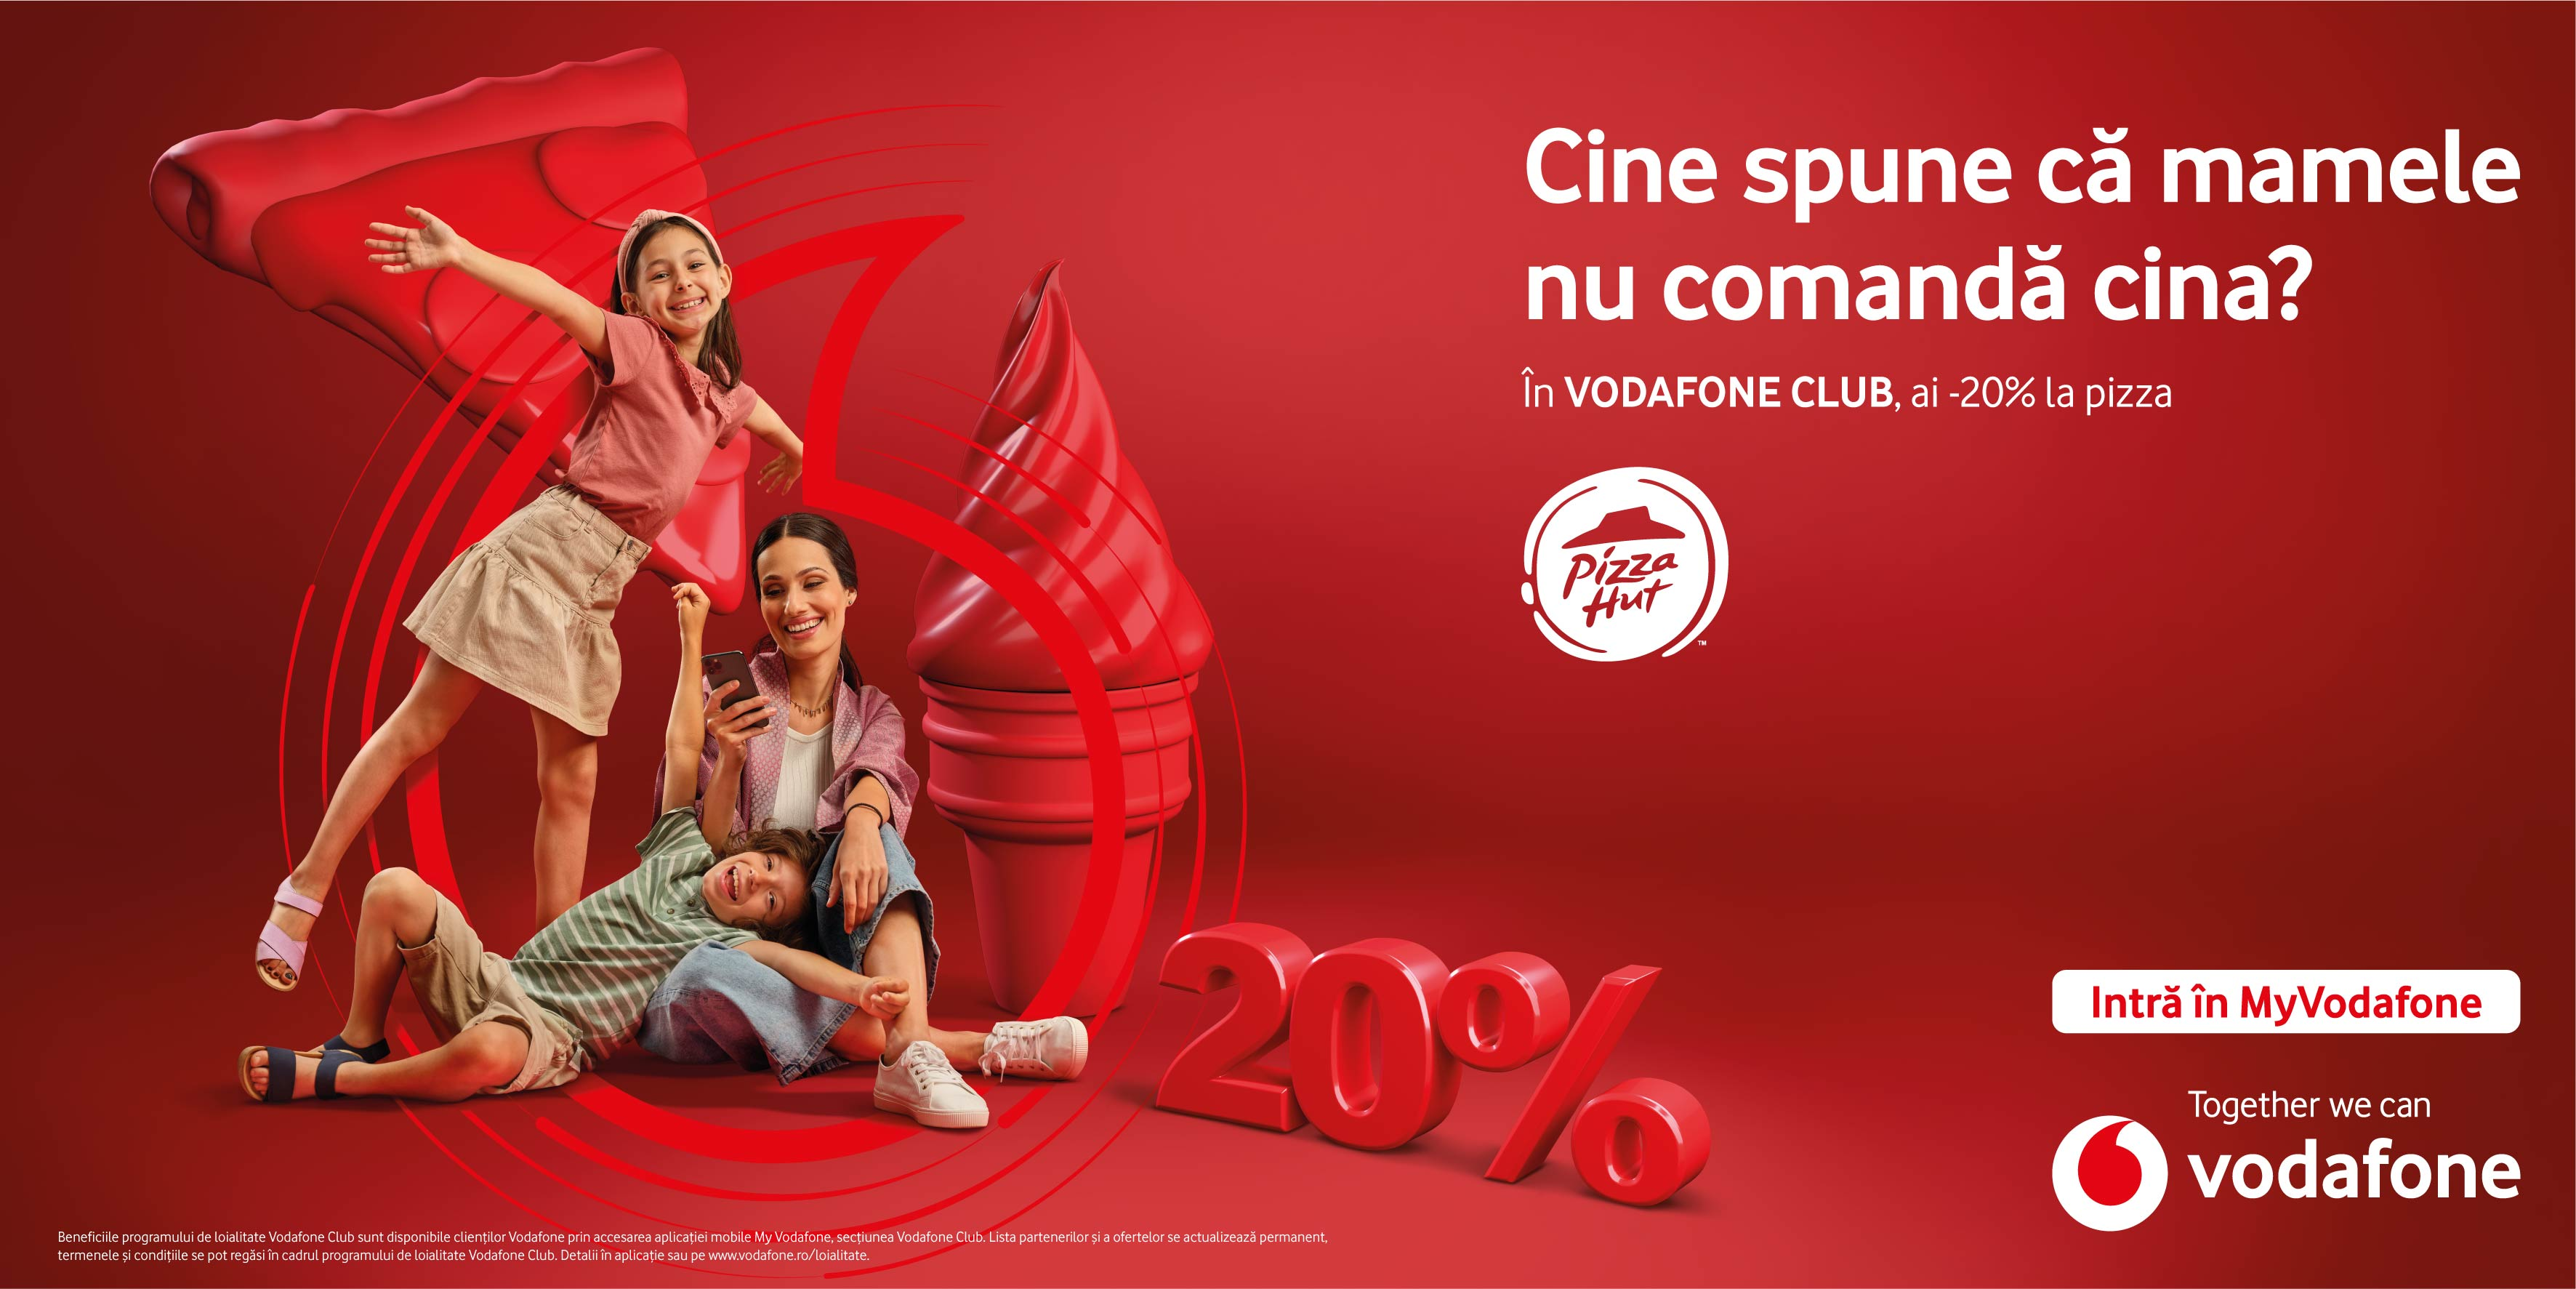 Vodafone Club's new offers enable customers to enjoy the summer at its best